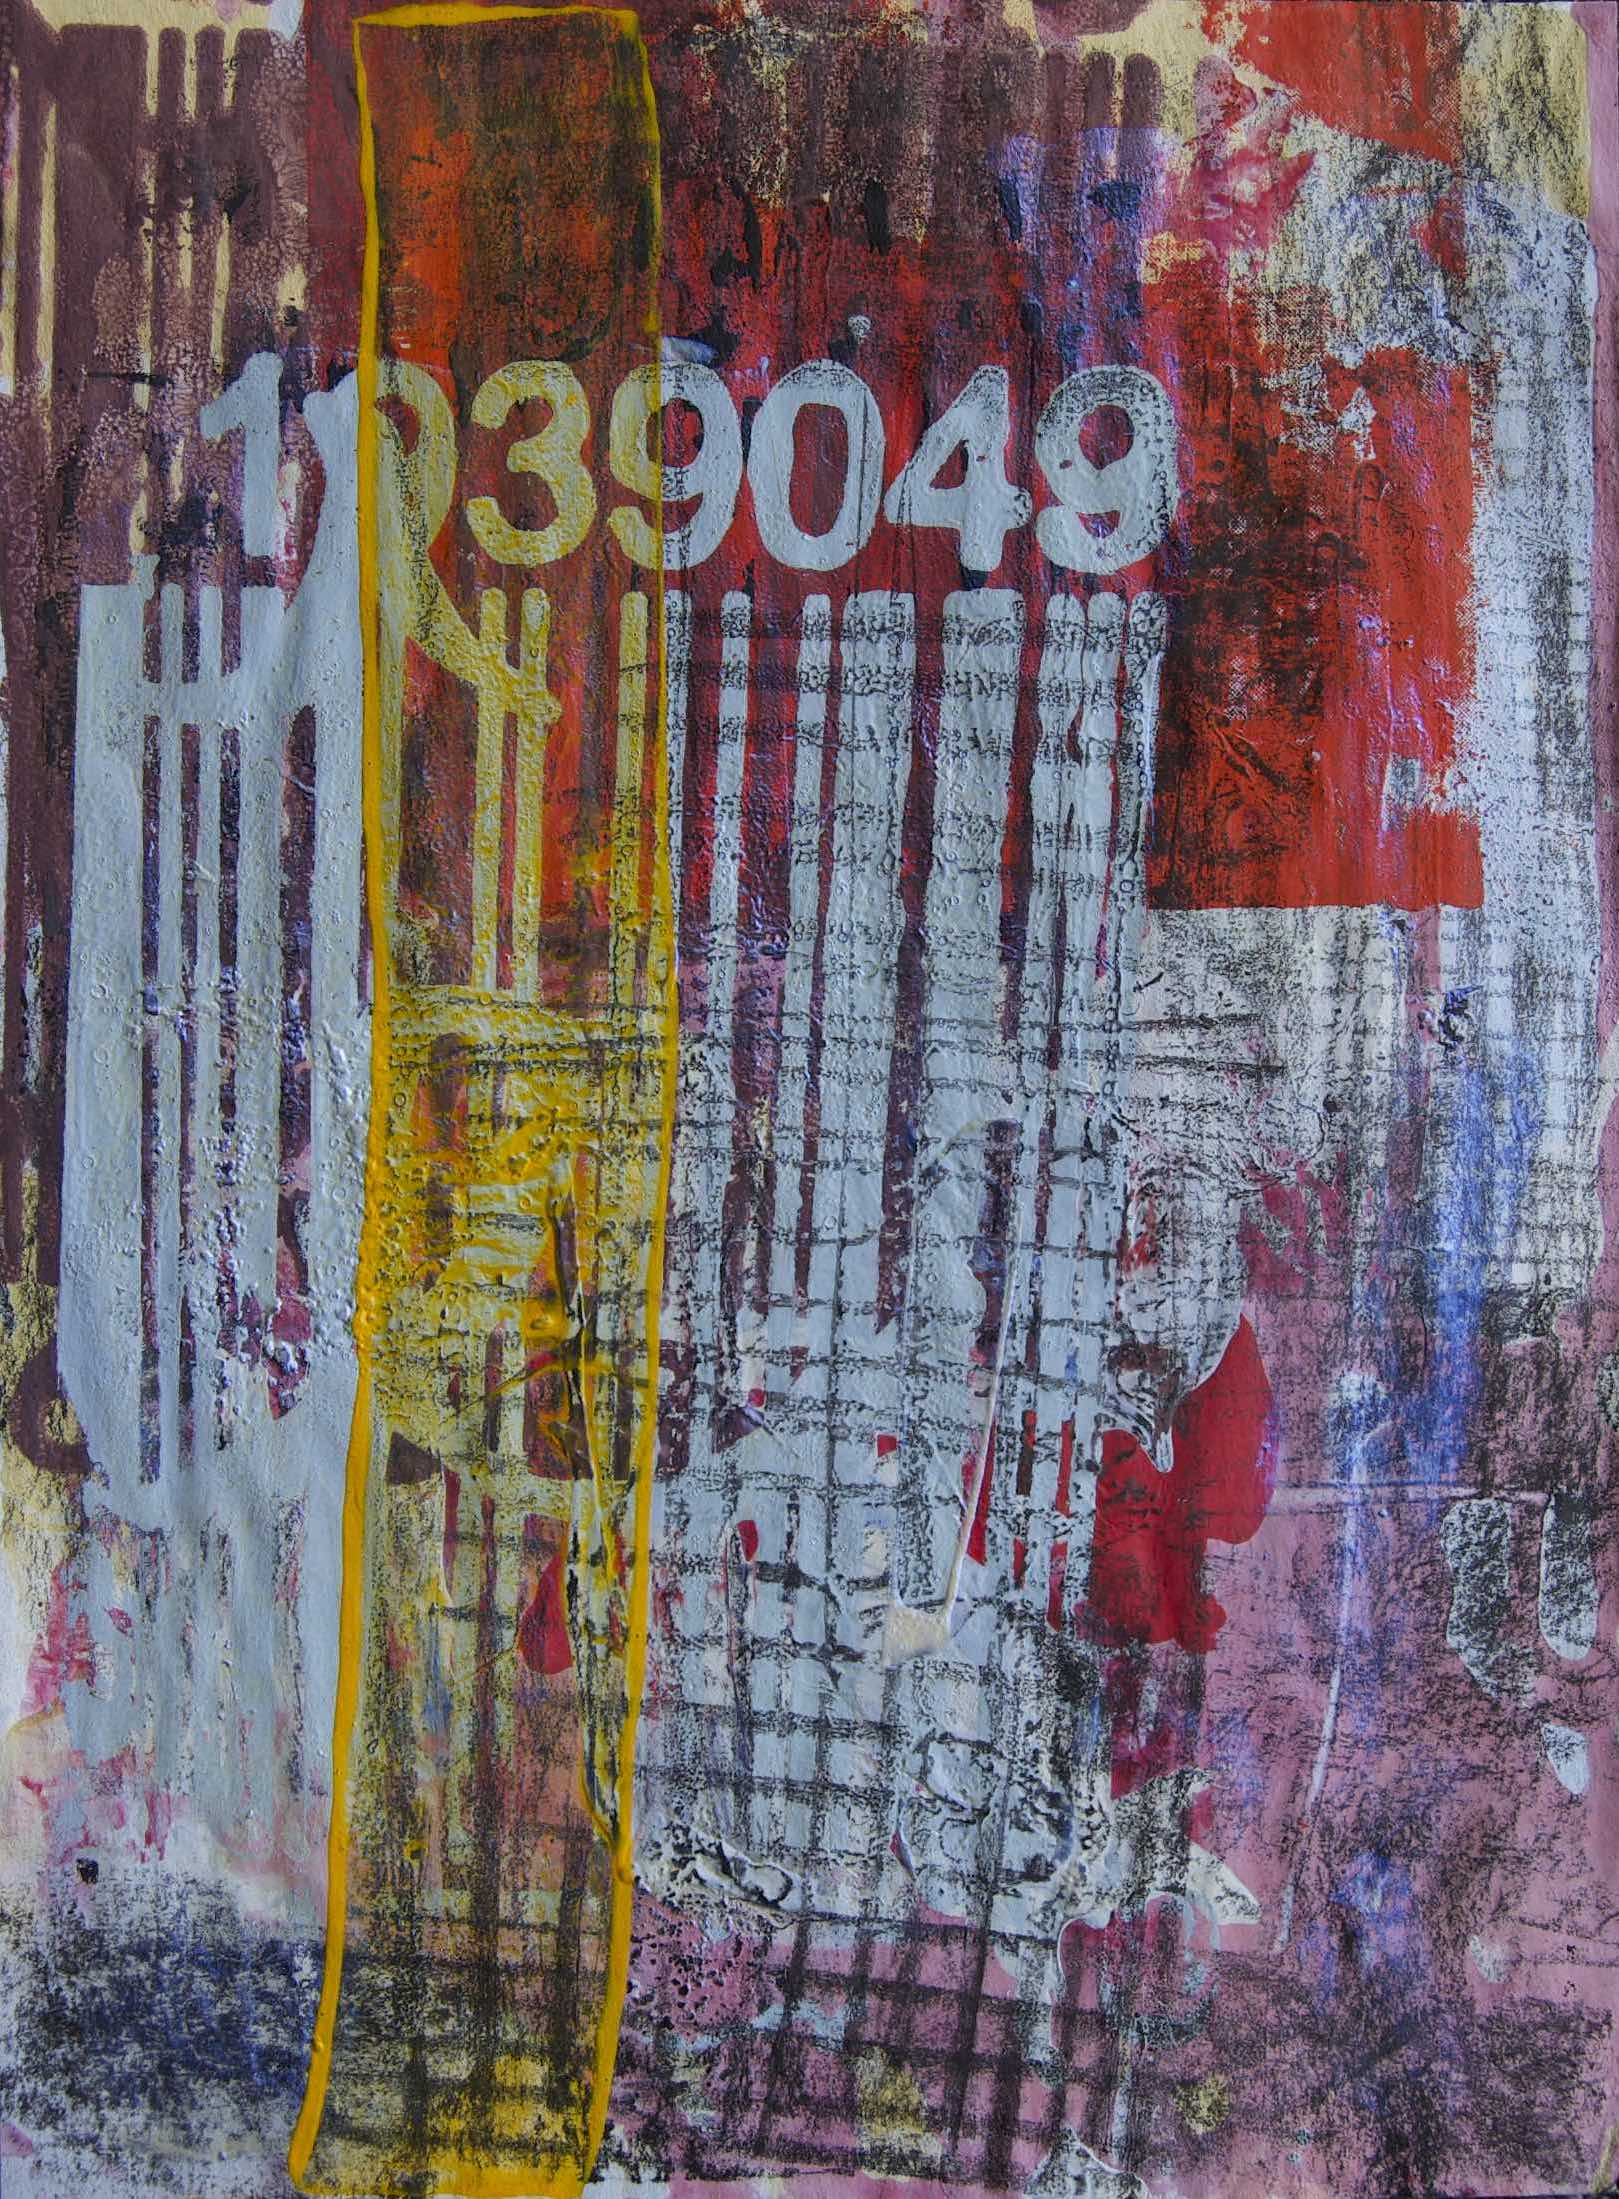 GRA (Government Reserved Areas). 2020 37-piece Drawing Installation Mixed media on paper